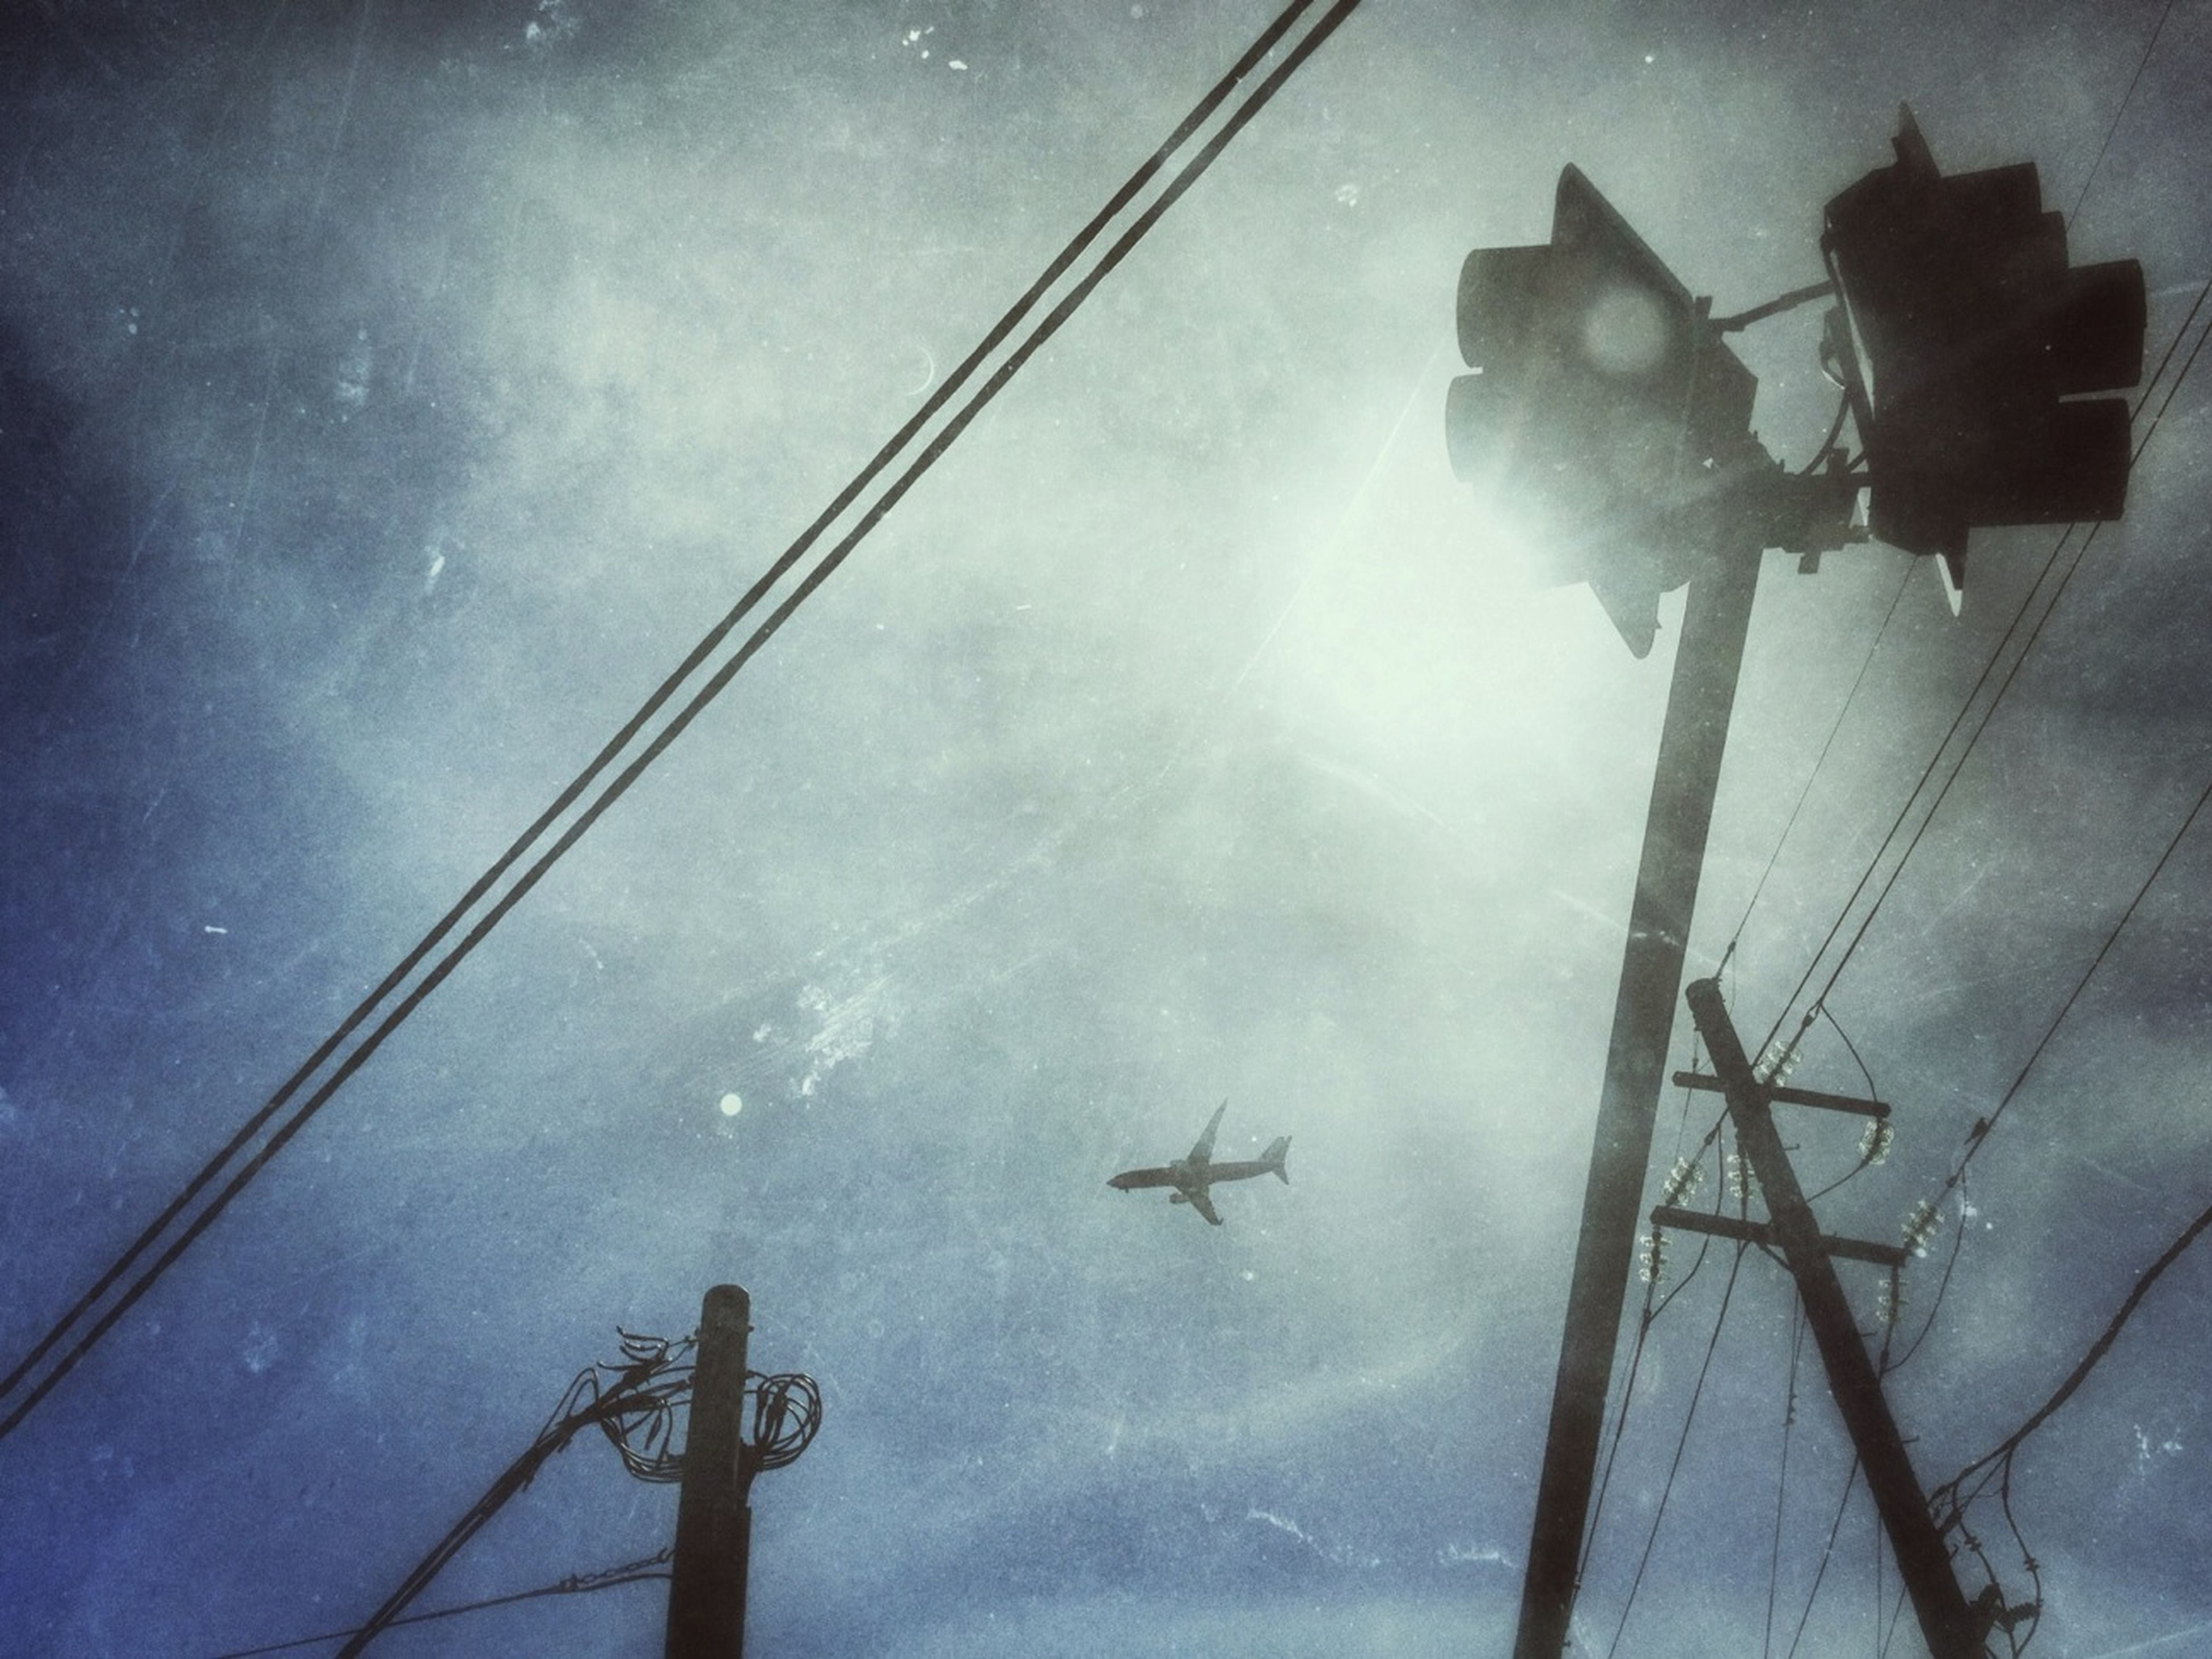 low angle view, sky, cloud - sky, transportation, cloudy, mode of transport, flying, street light, airplane, connection, cloud, day, power line, no people, nature, outdoors, sunlight, silhouette, weather, air vehicle